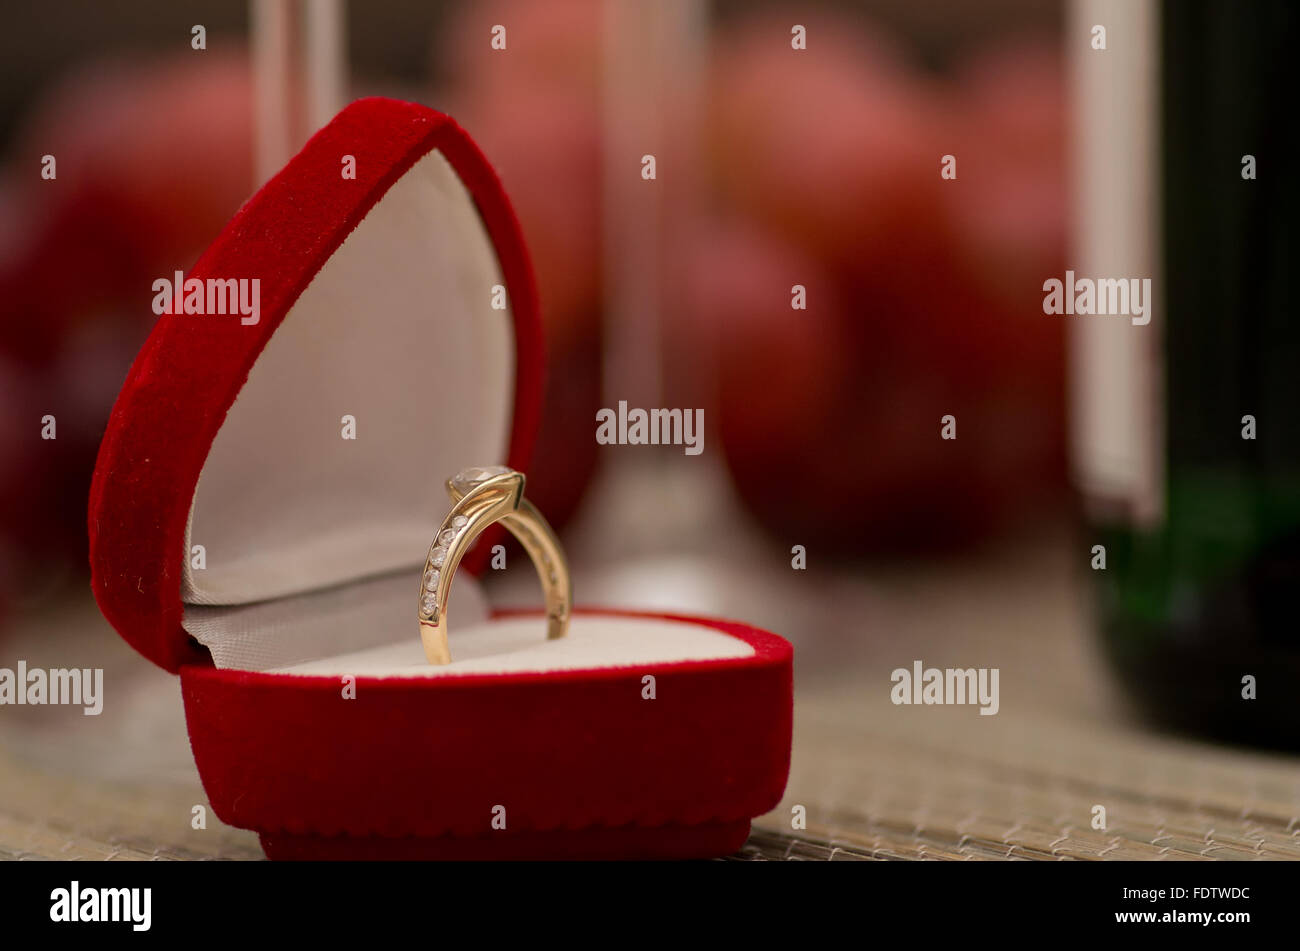 An engagement ring in a red box. - Stock Image